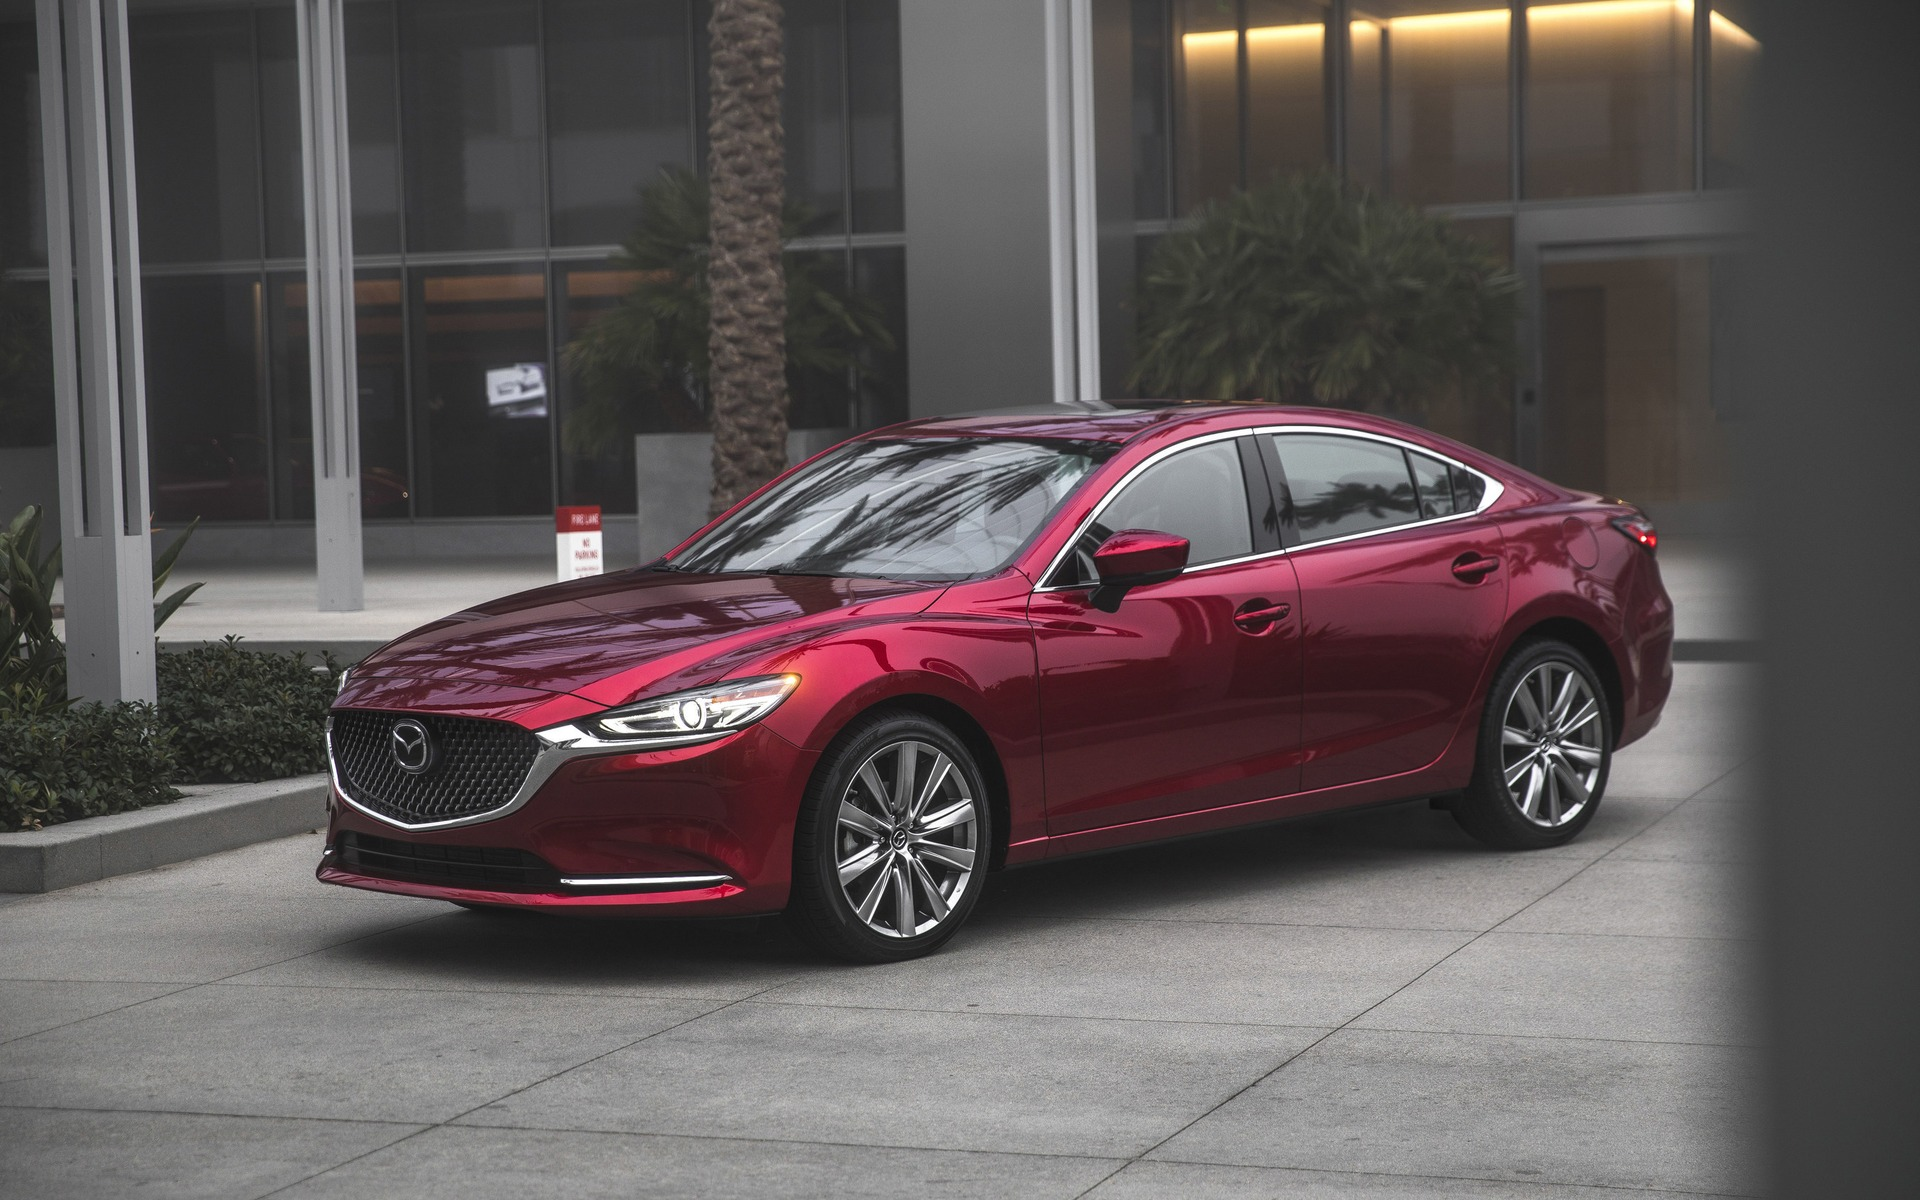 attractive significant one sedans be getting but some irvine that dealer of it events market will should h upgrades for is mazda most already and the yarmouth news info boost on